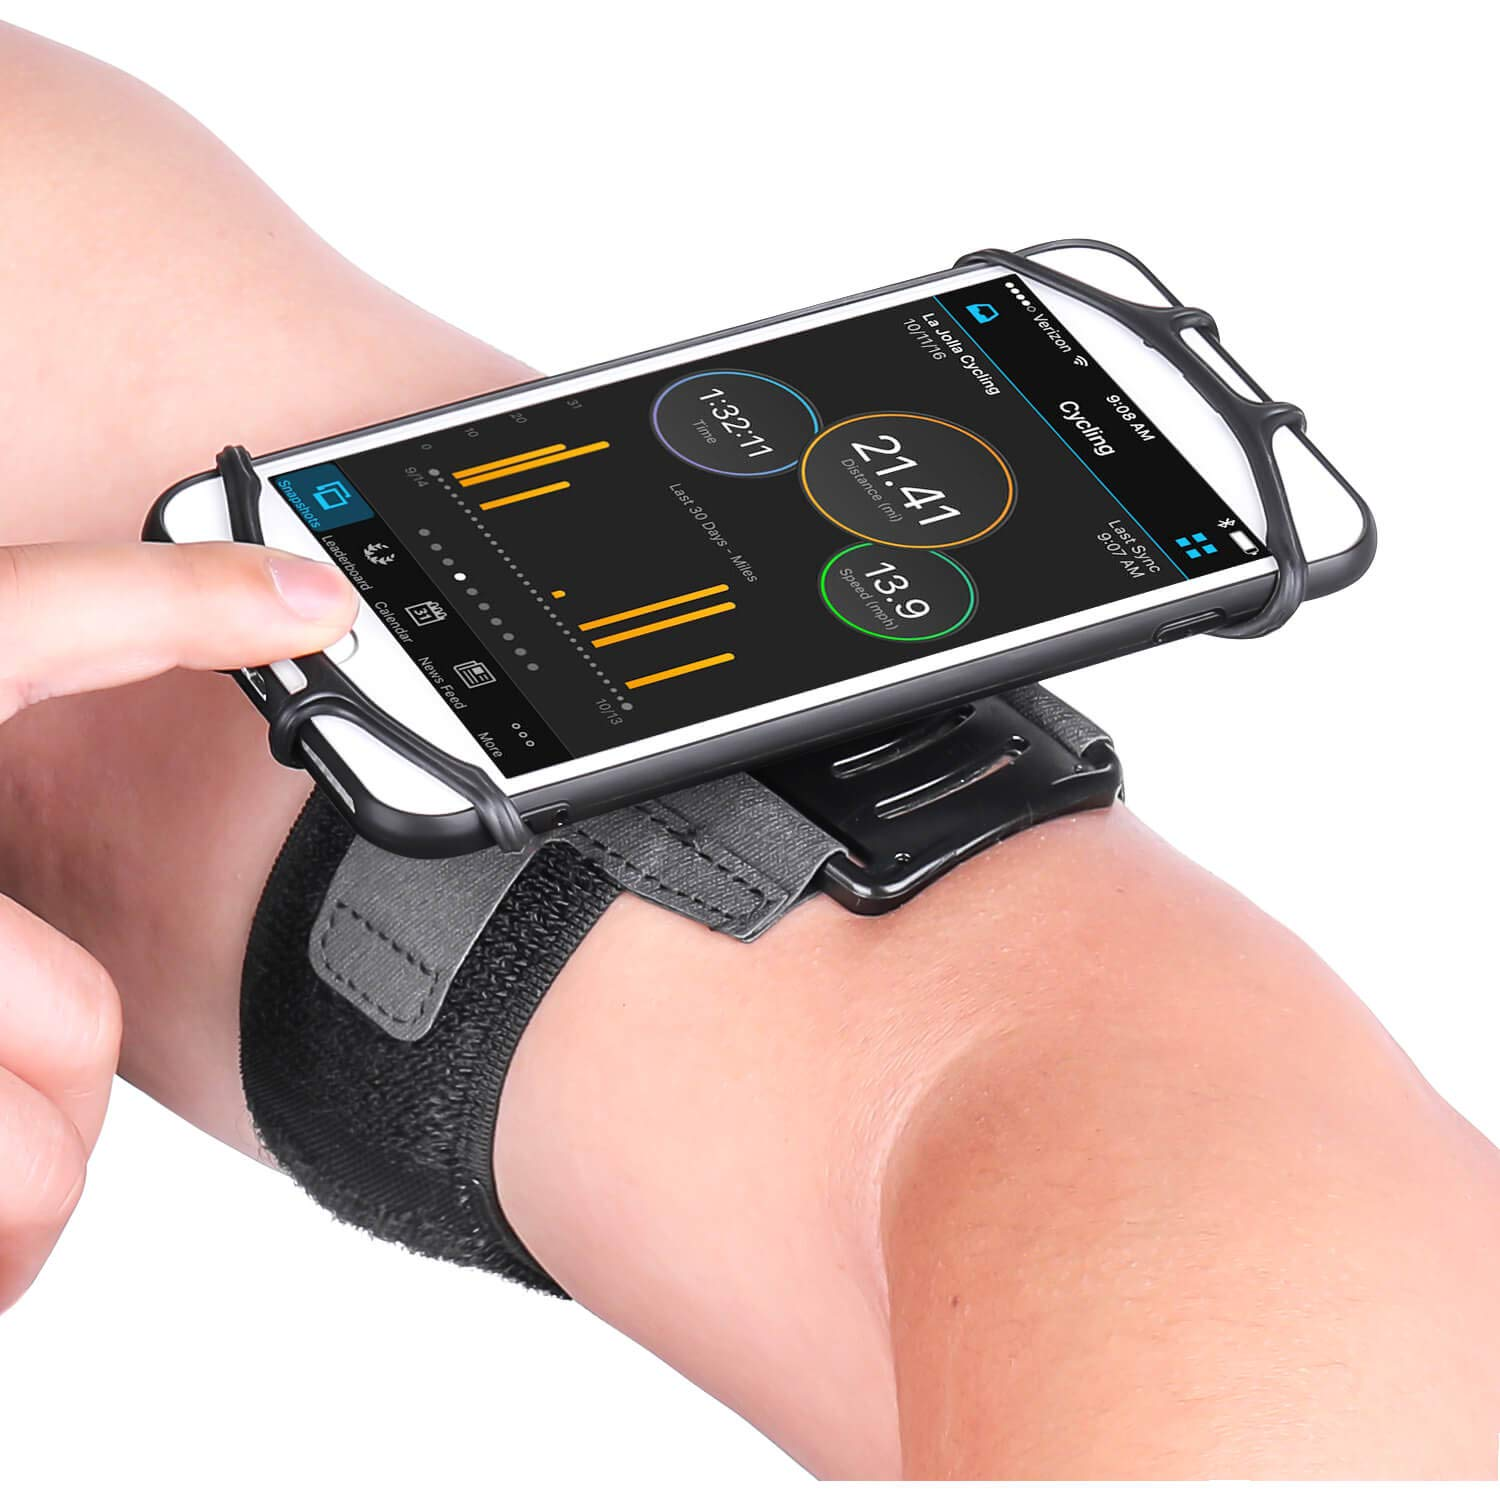 Newppon 180° Rotatable Running Phone Armband :with Key Holder for Apple iPhone Xs Max XR X 8 7 6 6S Plus Samsung Galaxy S9+ S9 S8 S7 S6 Edge Note 8 Google Pixel LG,for Sports Workout Exercise Jogging by newppon